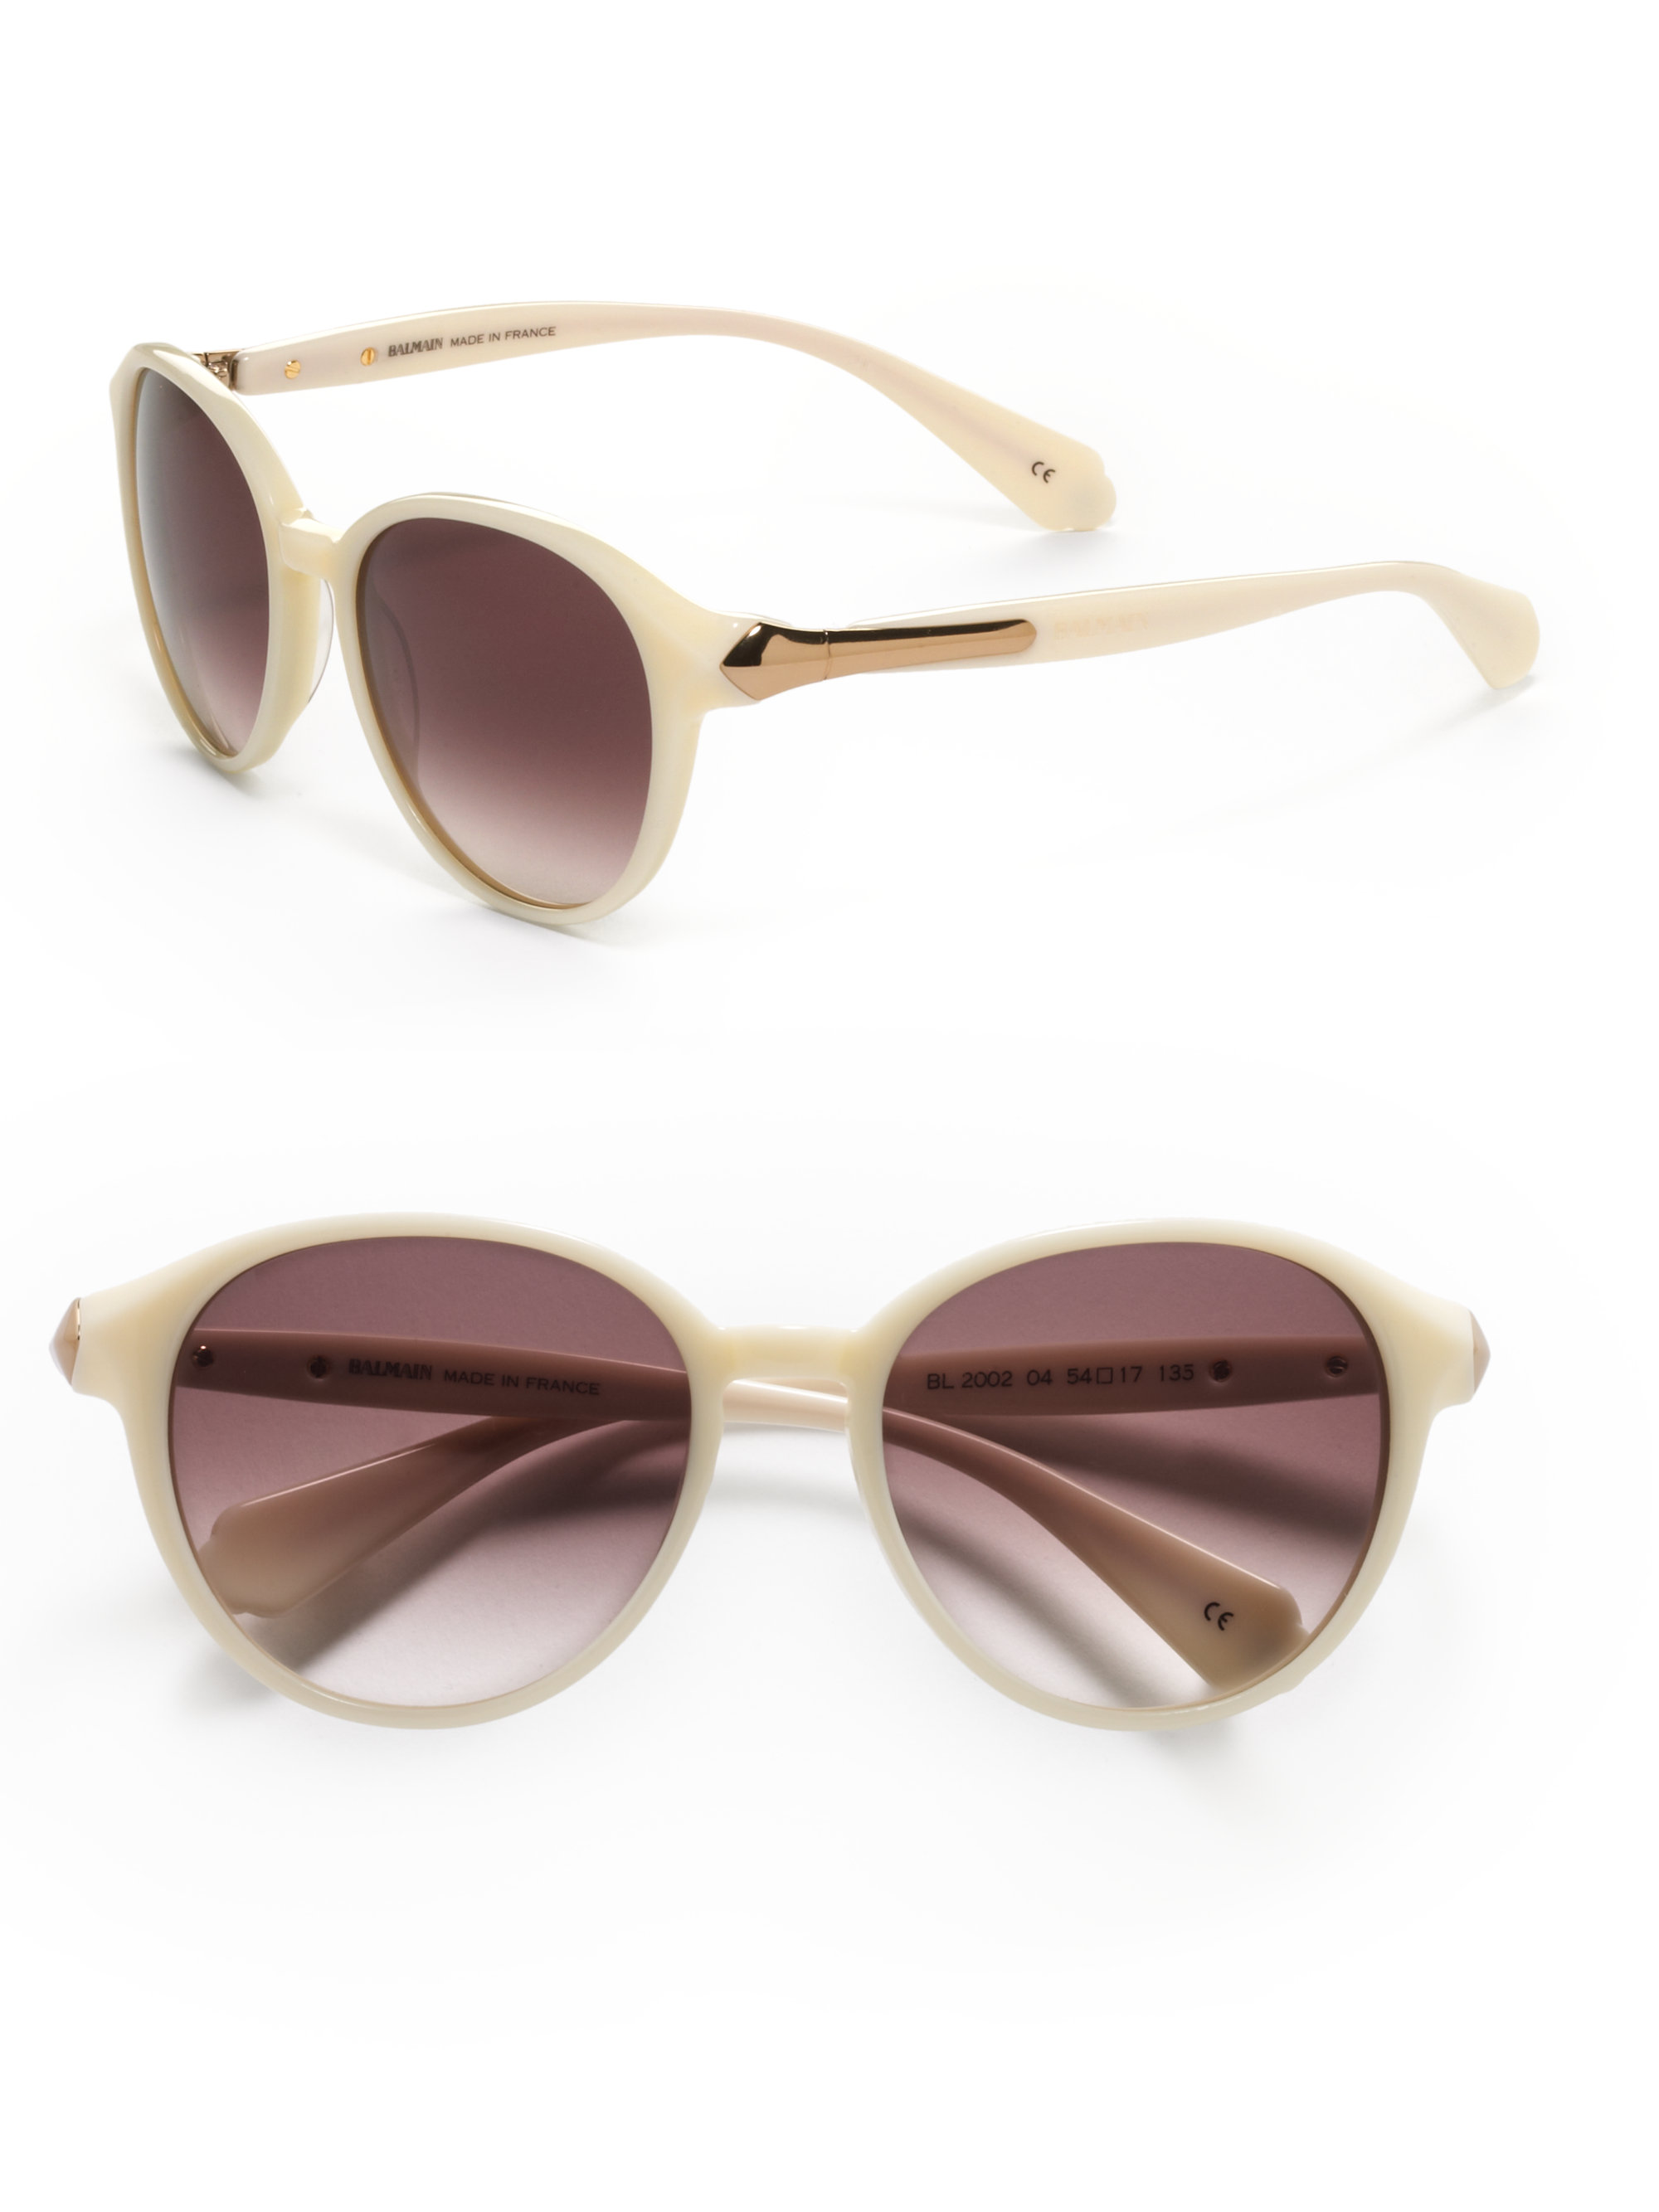 e60283aca Balmain Round Baroque Acetate Sunglasses in White - Lyst